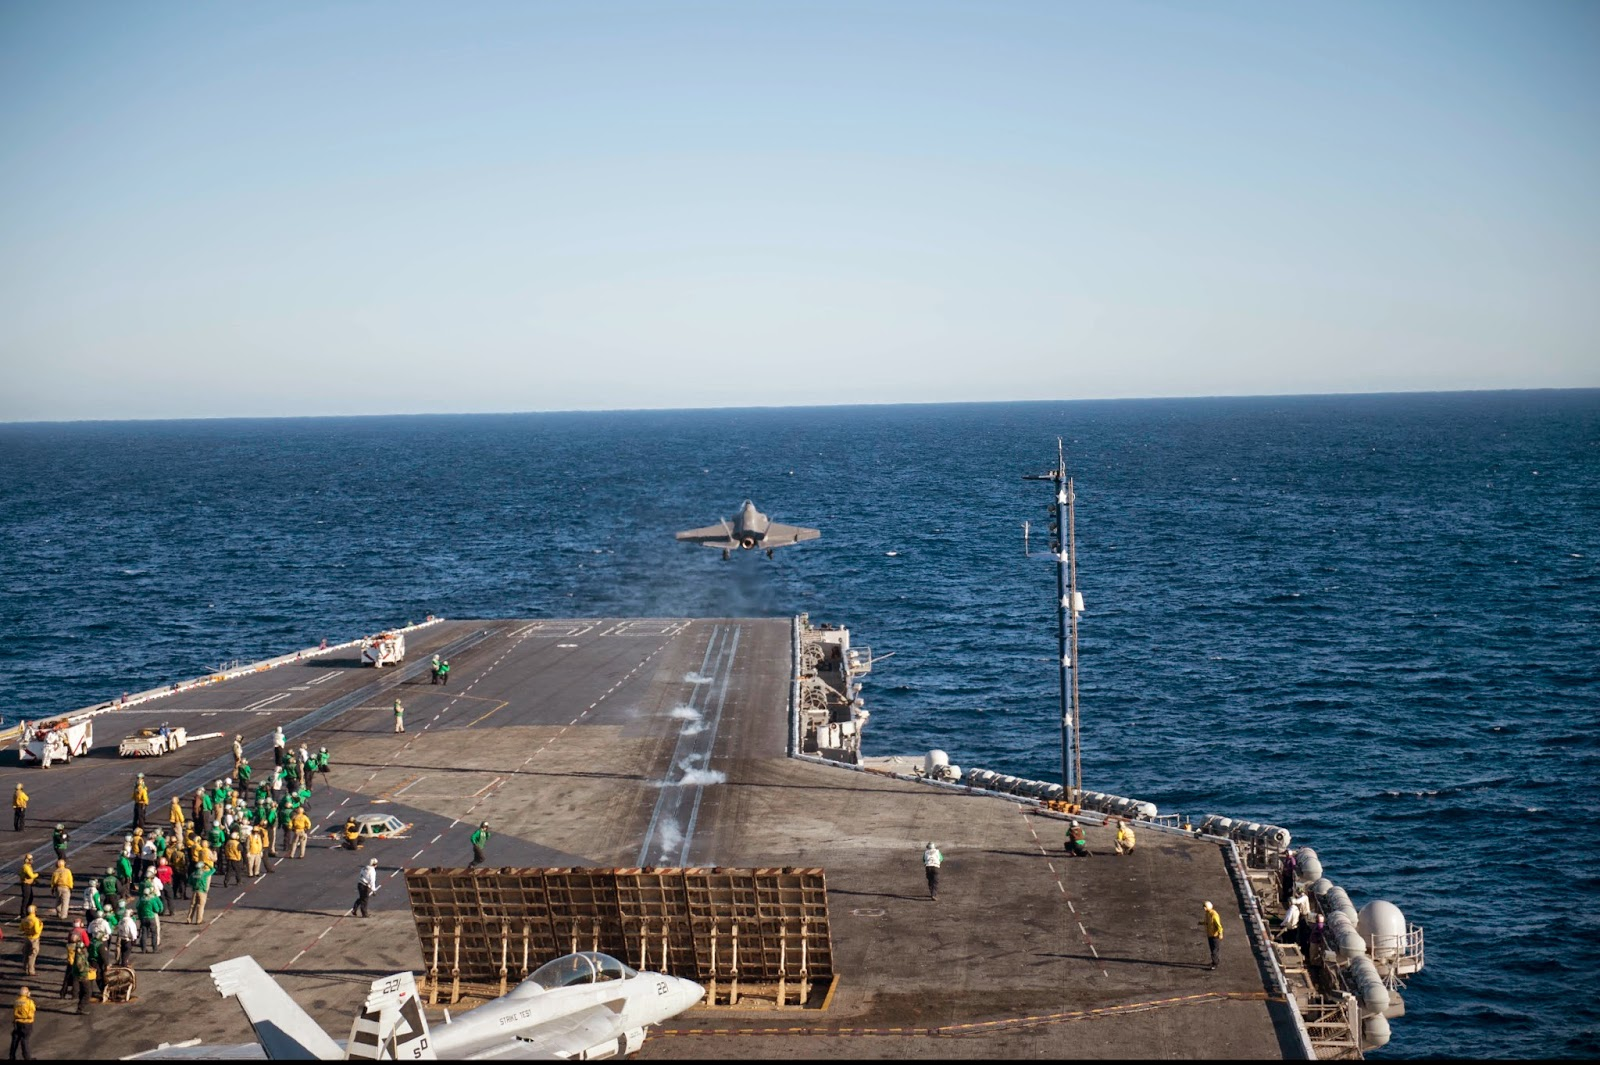 F-35 Jsf carrier takeoff